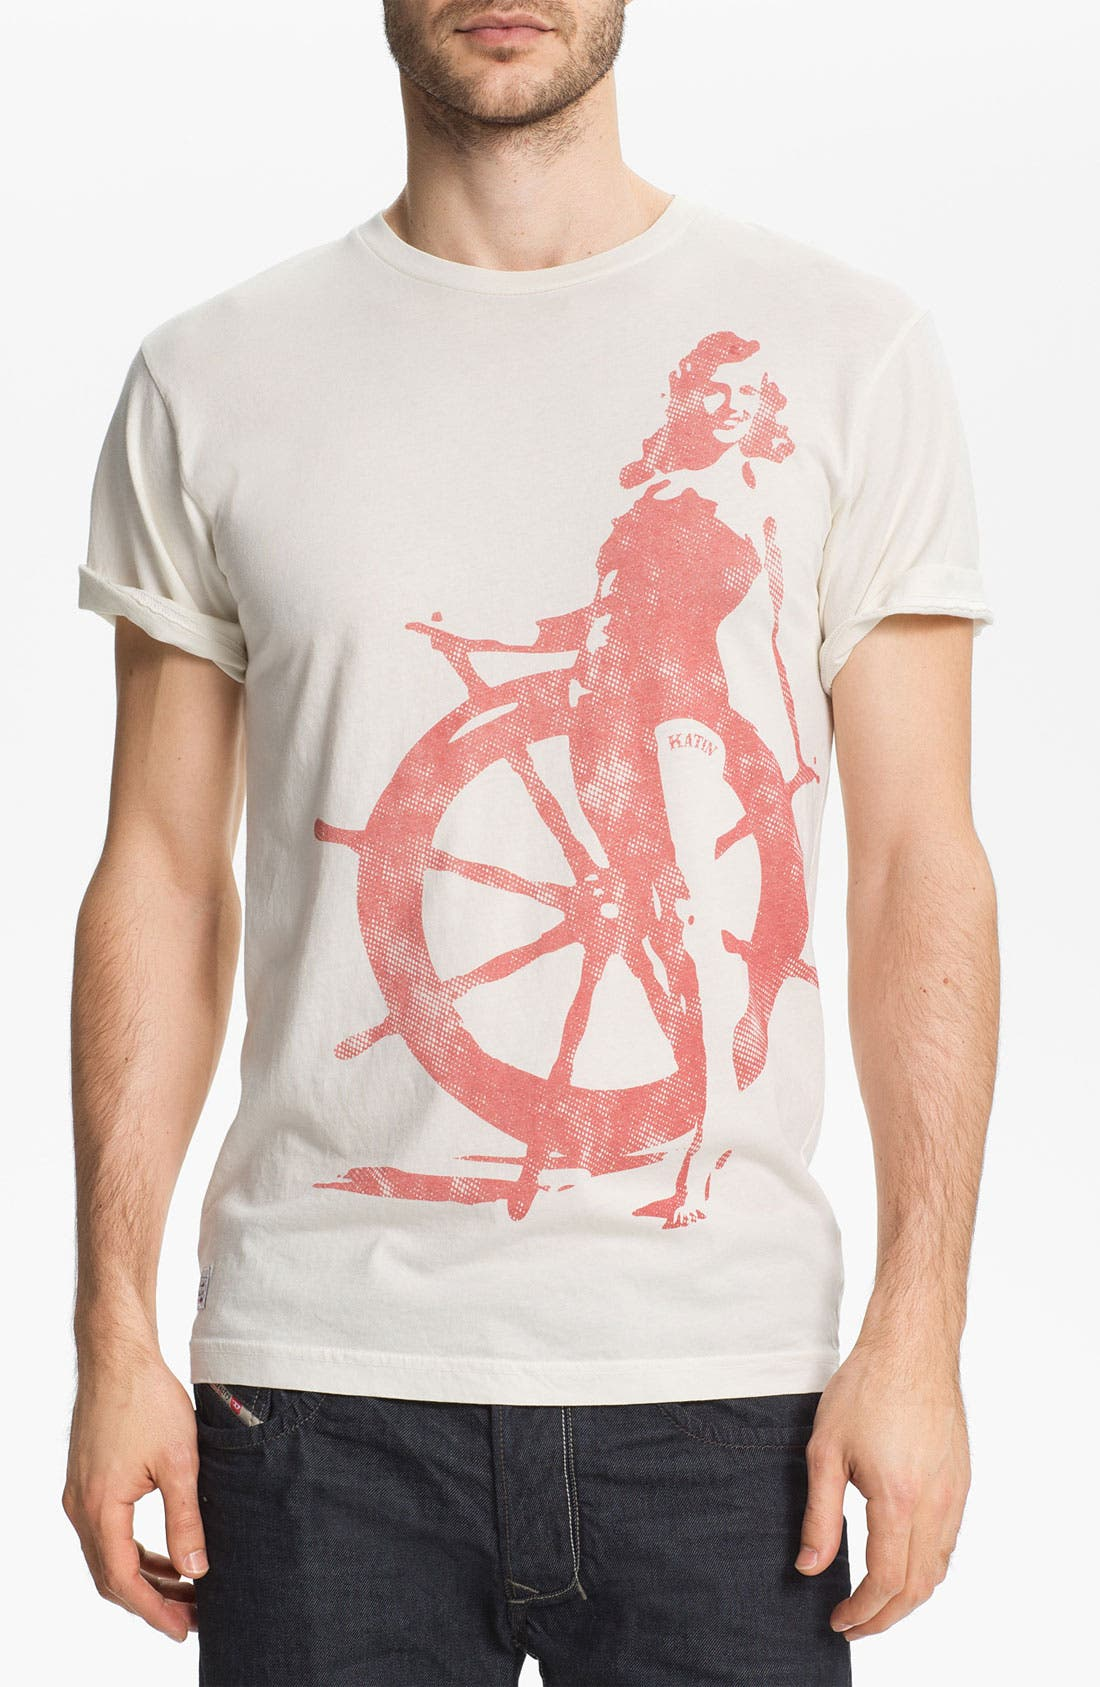 Main Image - Katin 'Wench' Graphic T-Shirt